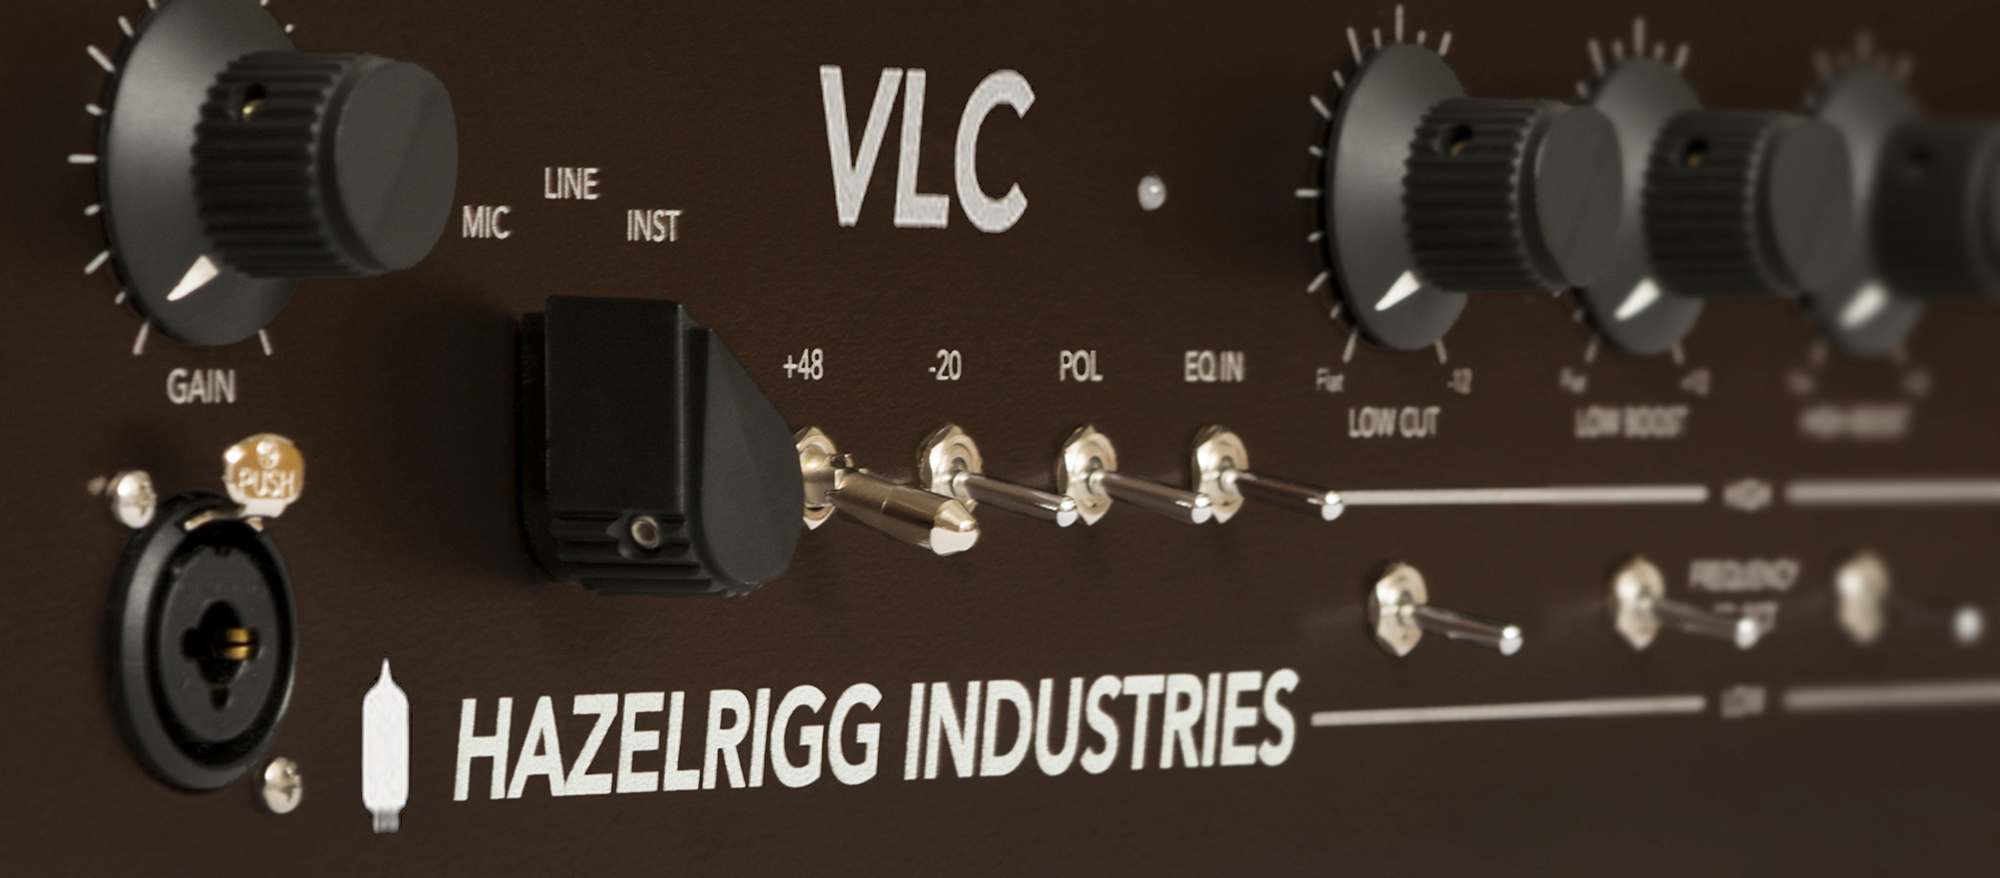 Hazelrigg-Industries-VLC-1-front-square